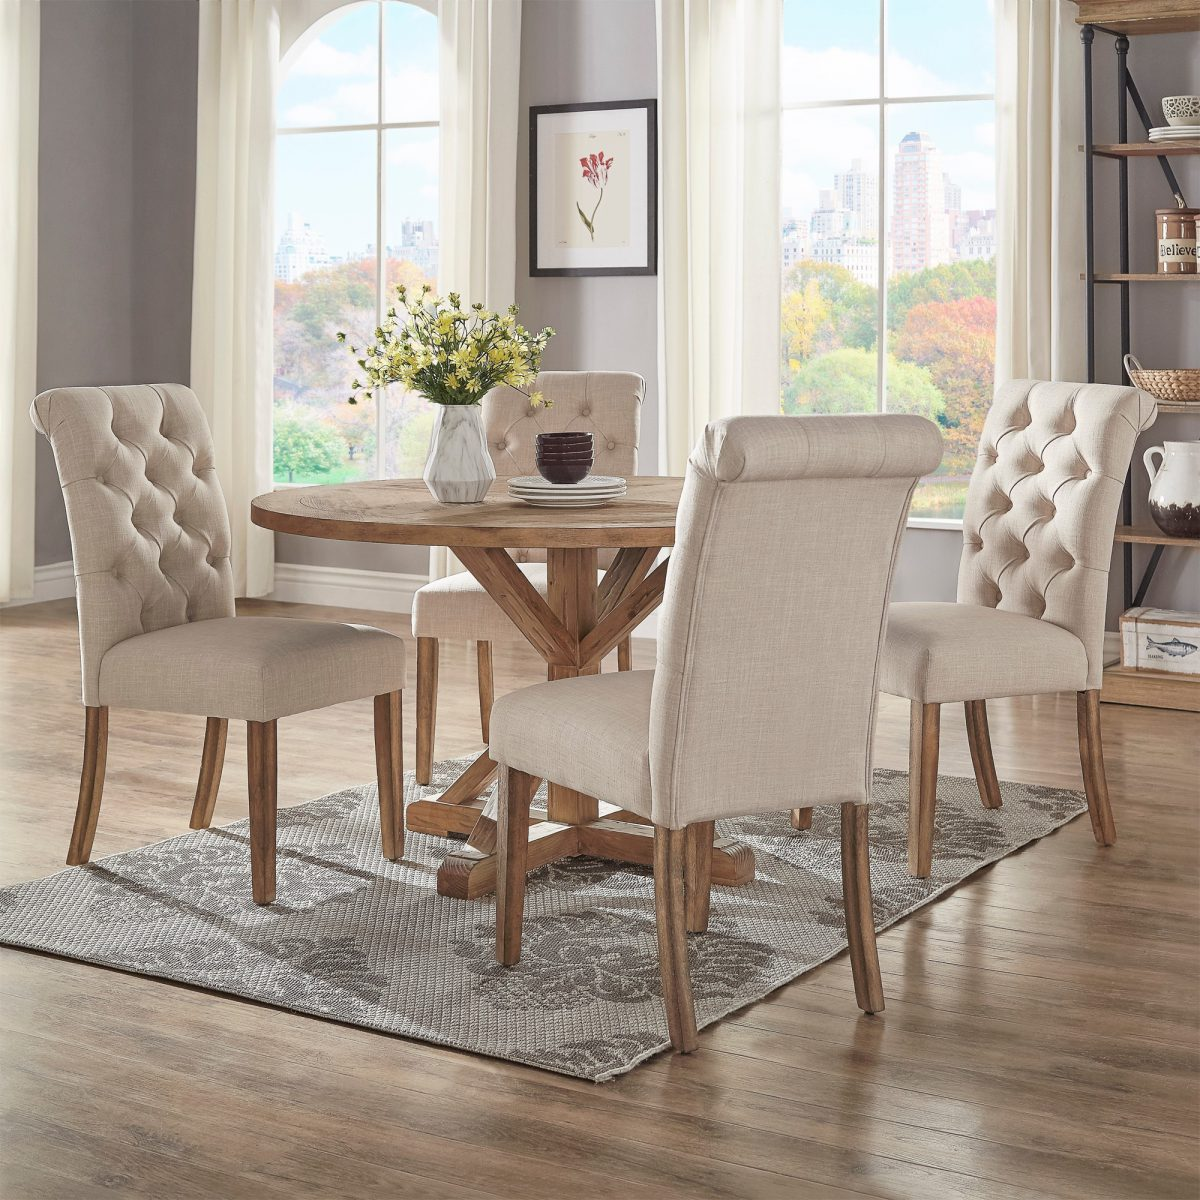 Benchwright Rustic X Base 48 Inch Round Dining Table Set By INSPIRE Q  Artisan